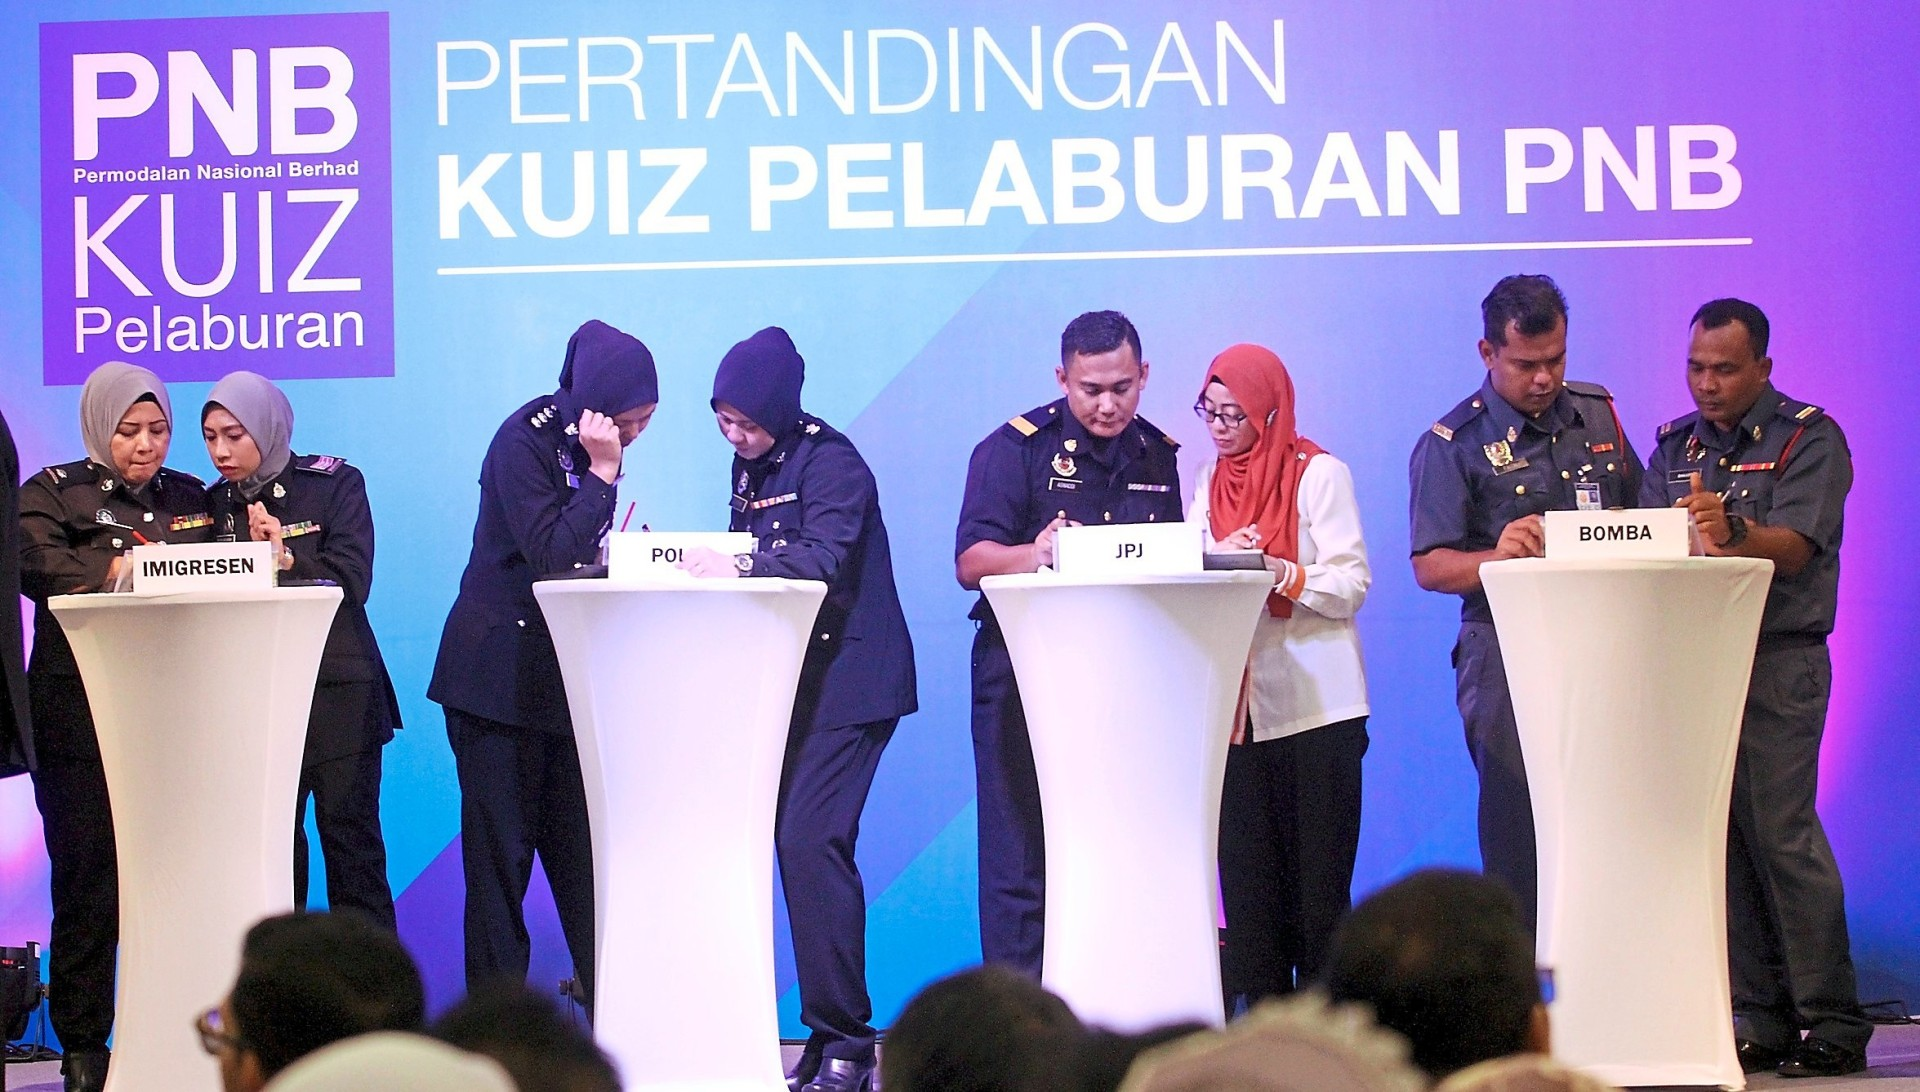 Finalists in the uniformed bodies category answering questions during the PNB investment quiz 2019 in Puchong.